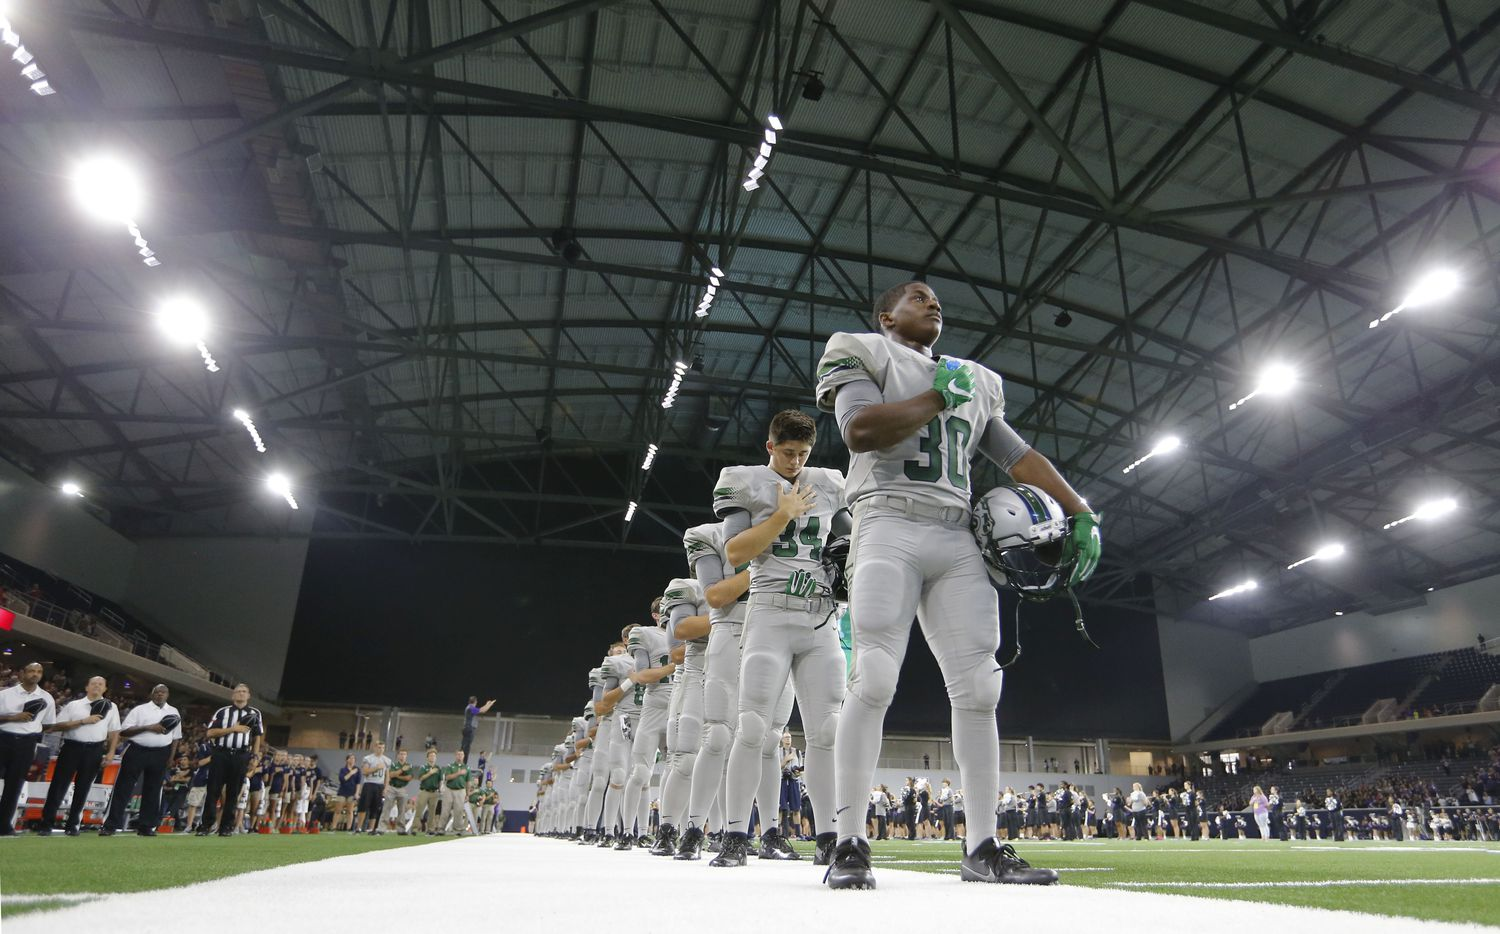 Reedy's Justin Gipson (30) and team during the National Anthem before playing against Independence High School in the first high school football game at The Star in Frisco on Saturday, Aug. 27, 2016.